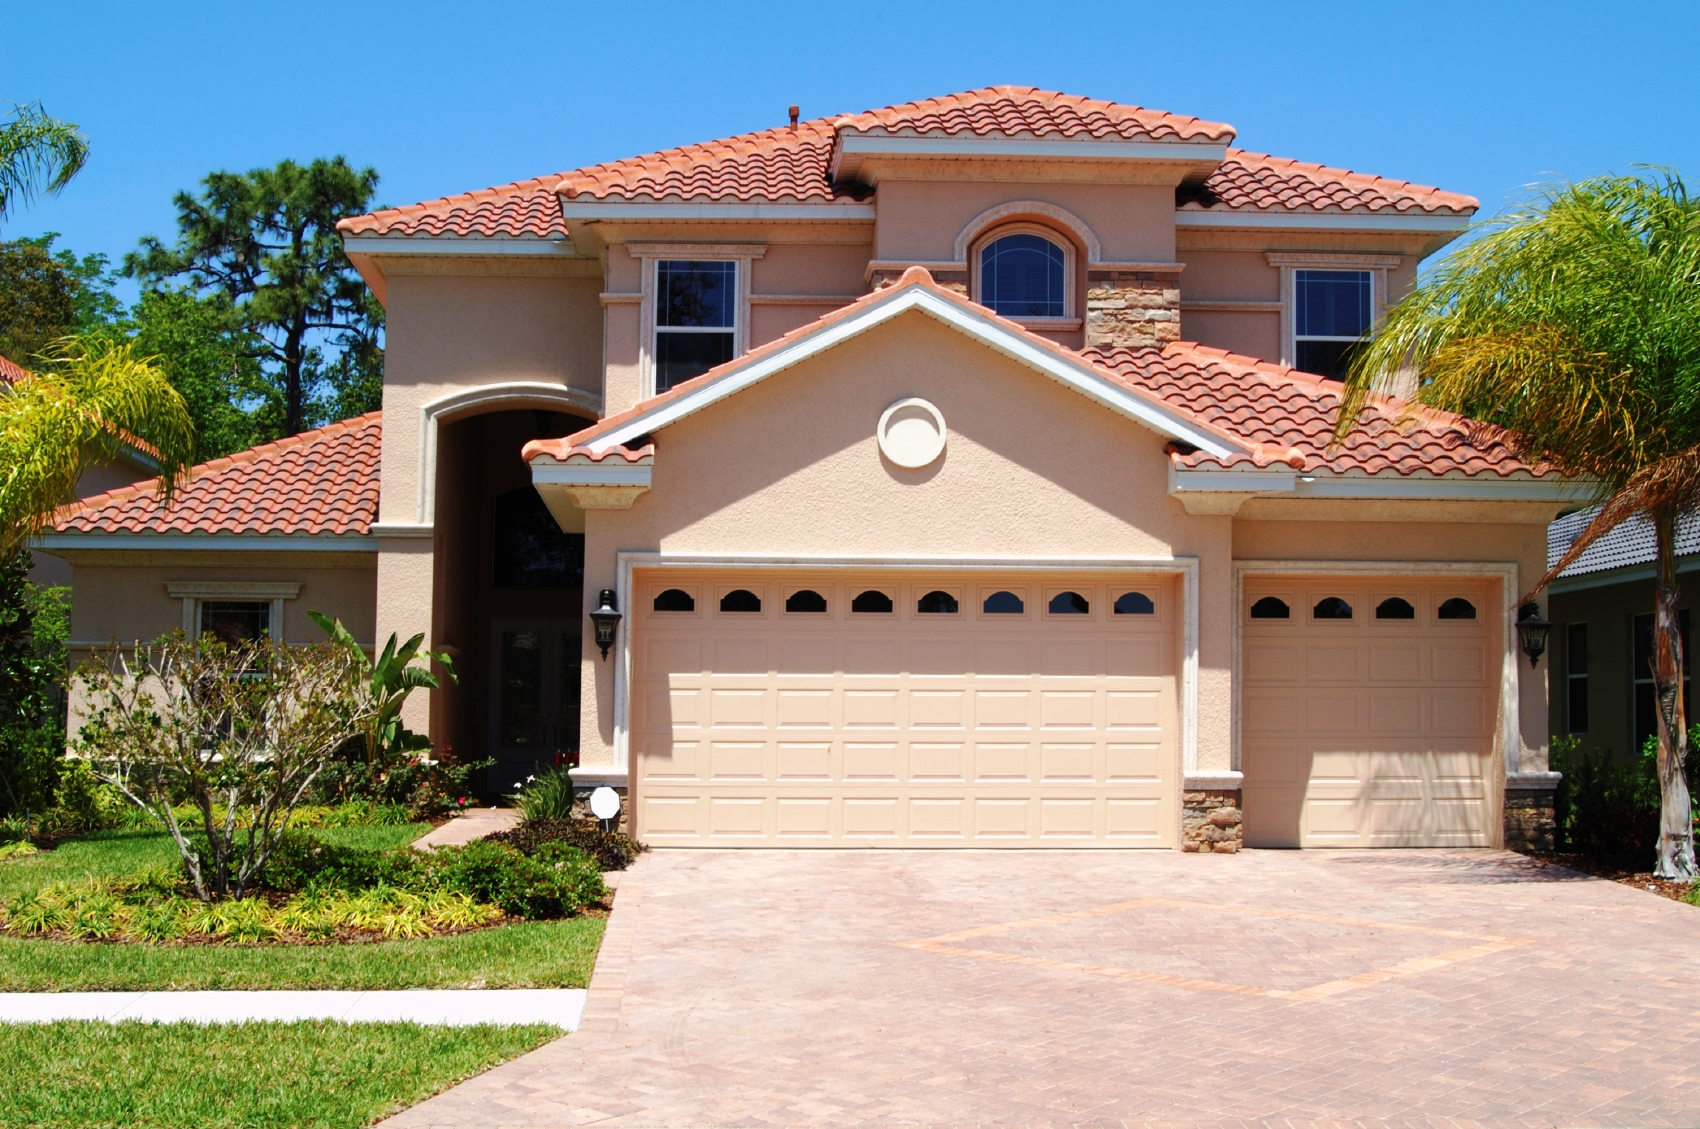 Tile roofs james kate roofing free estimates a rated for Medium houses